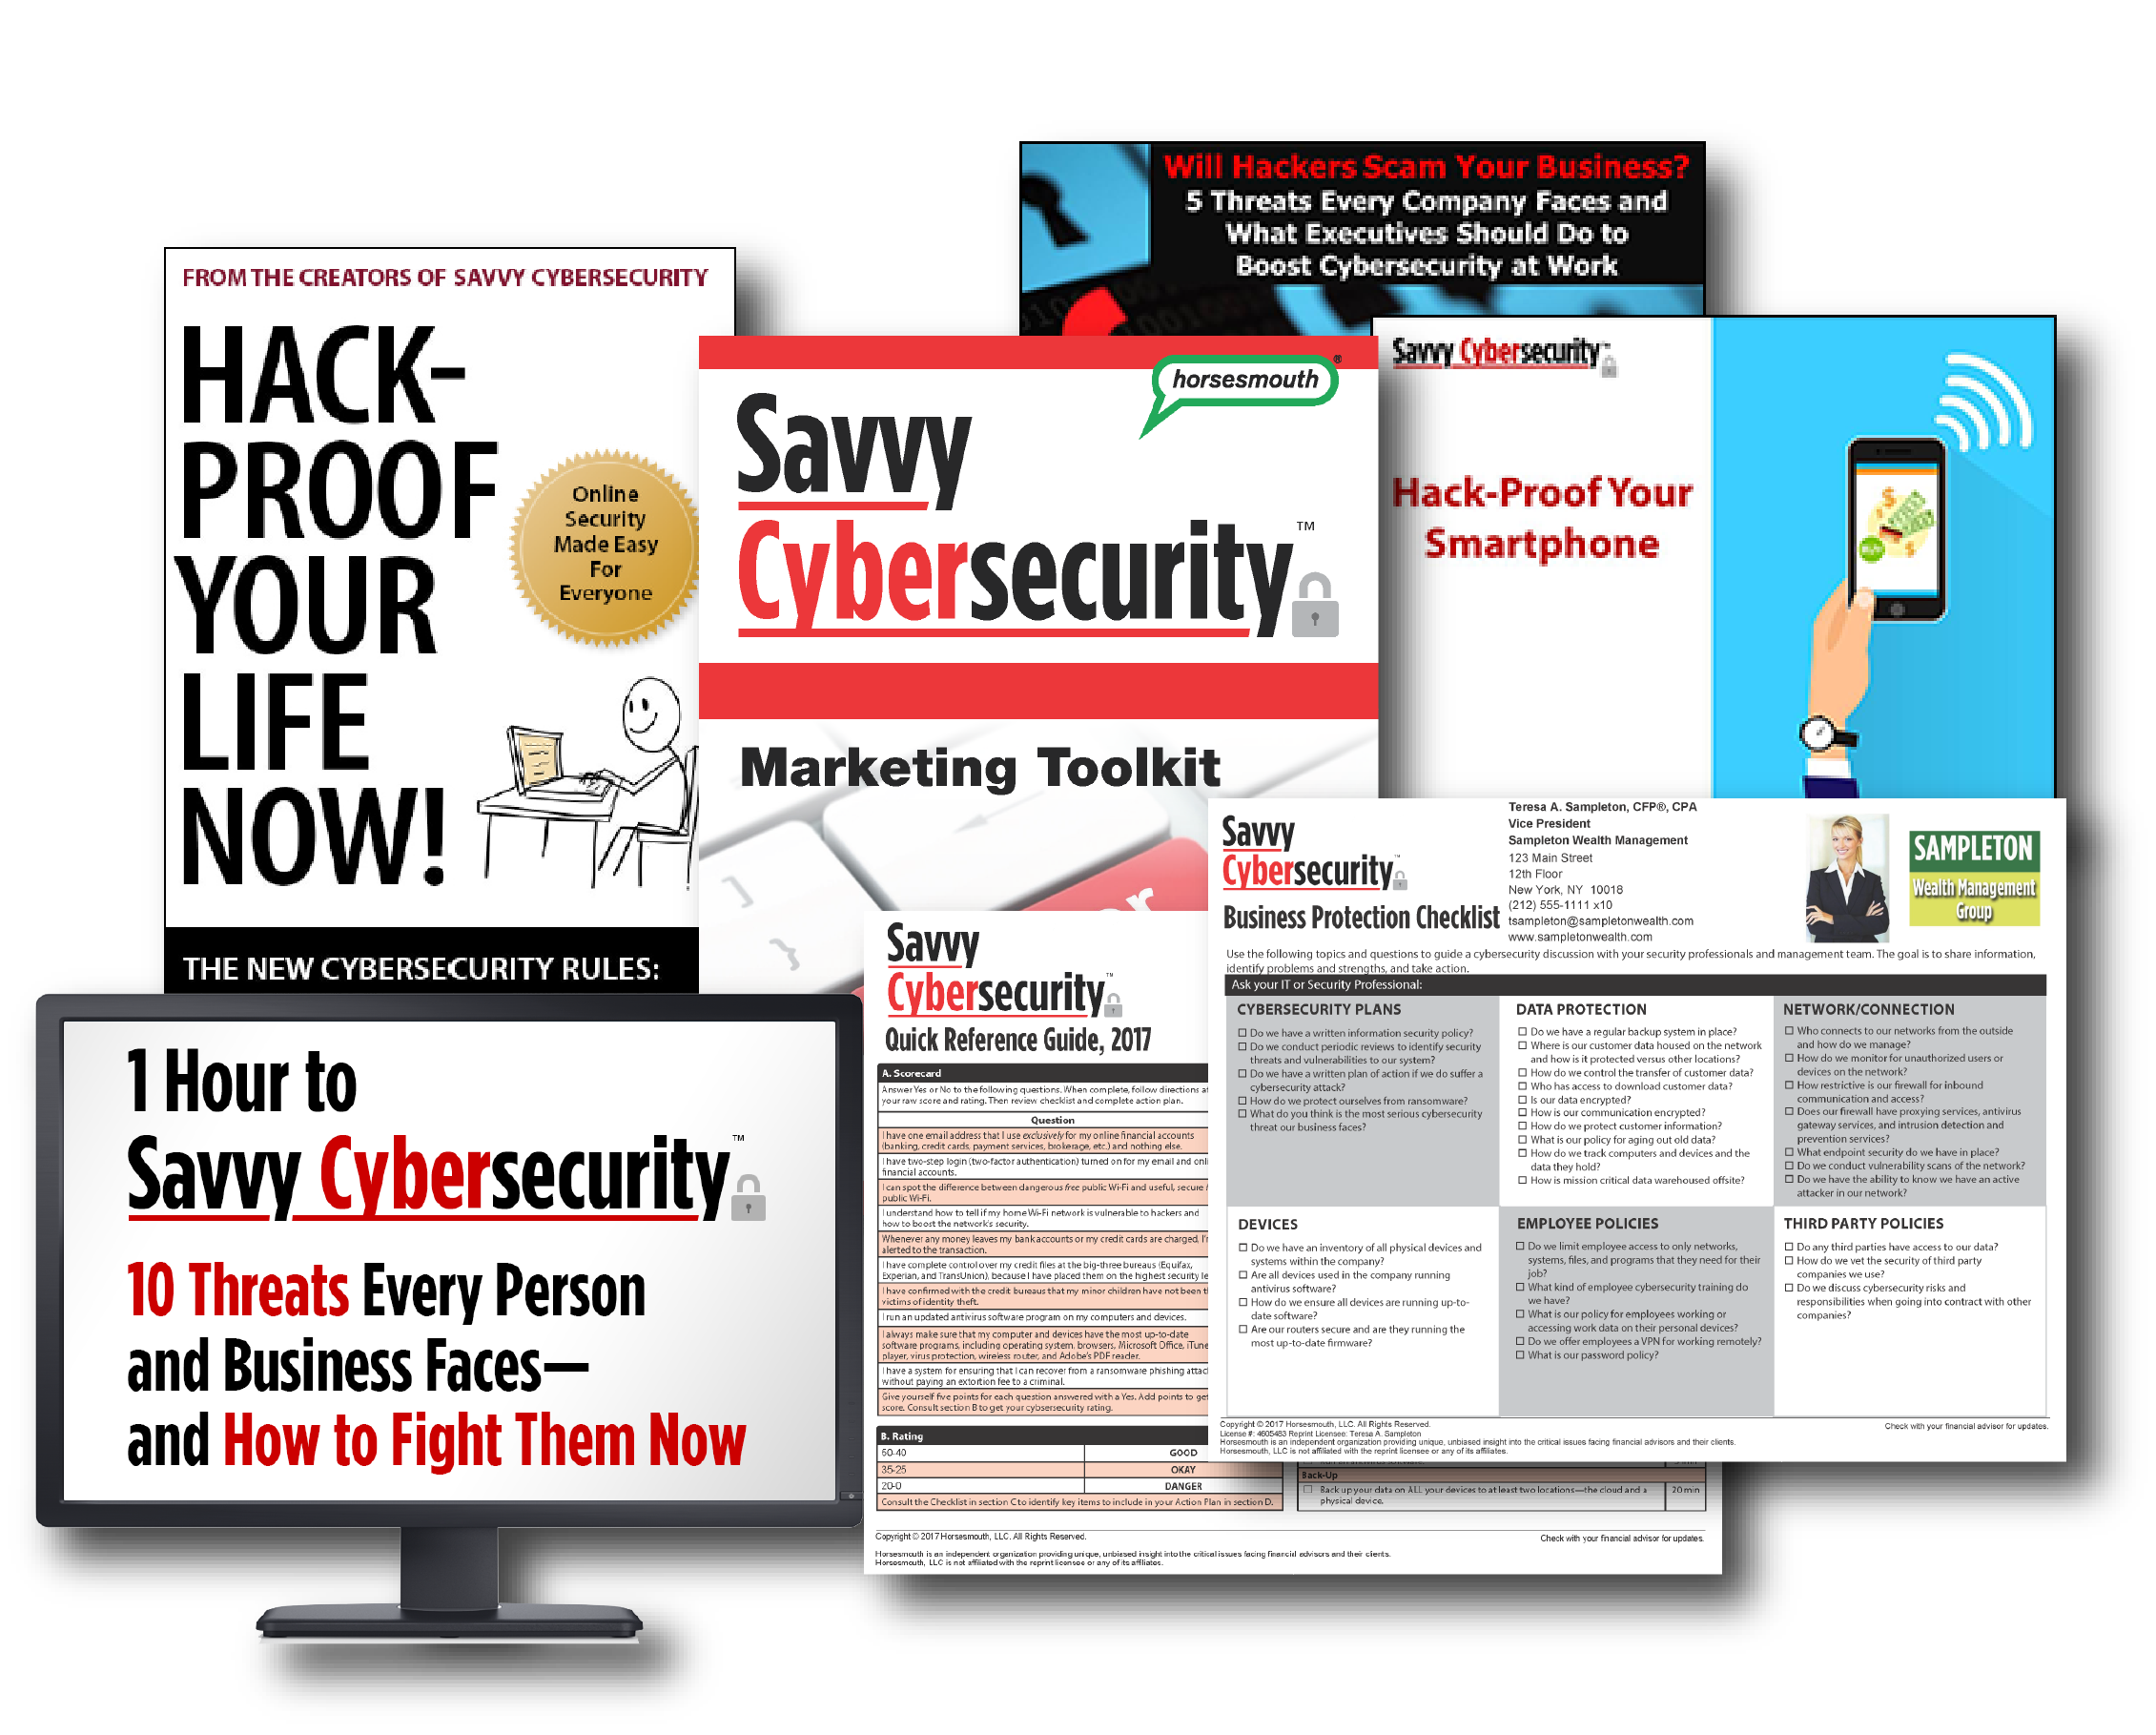 Savvy Cybersecurity